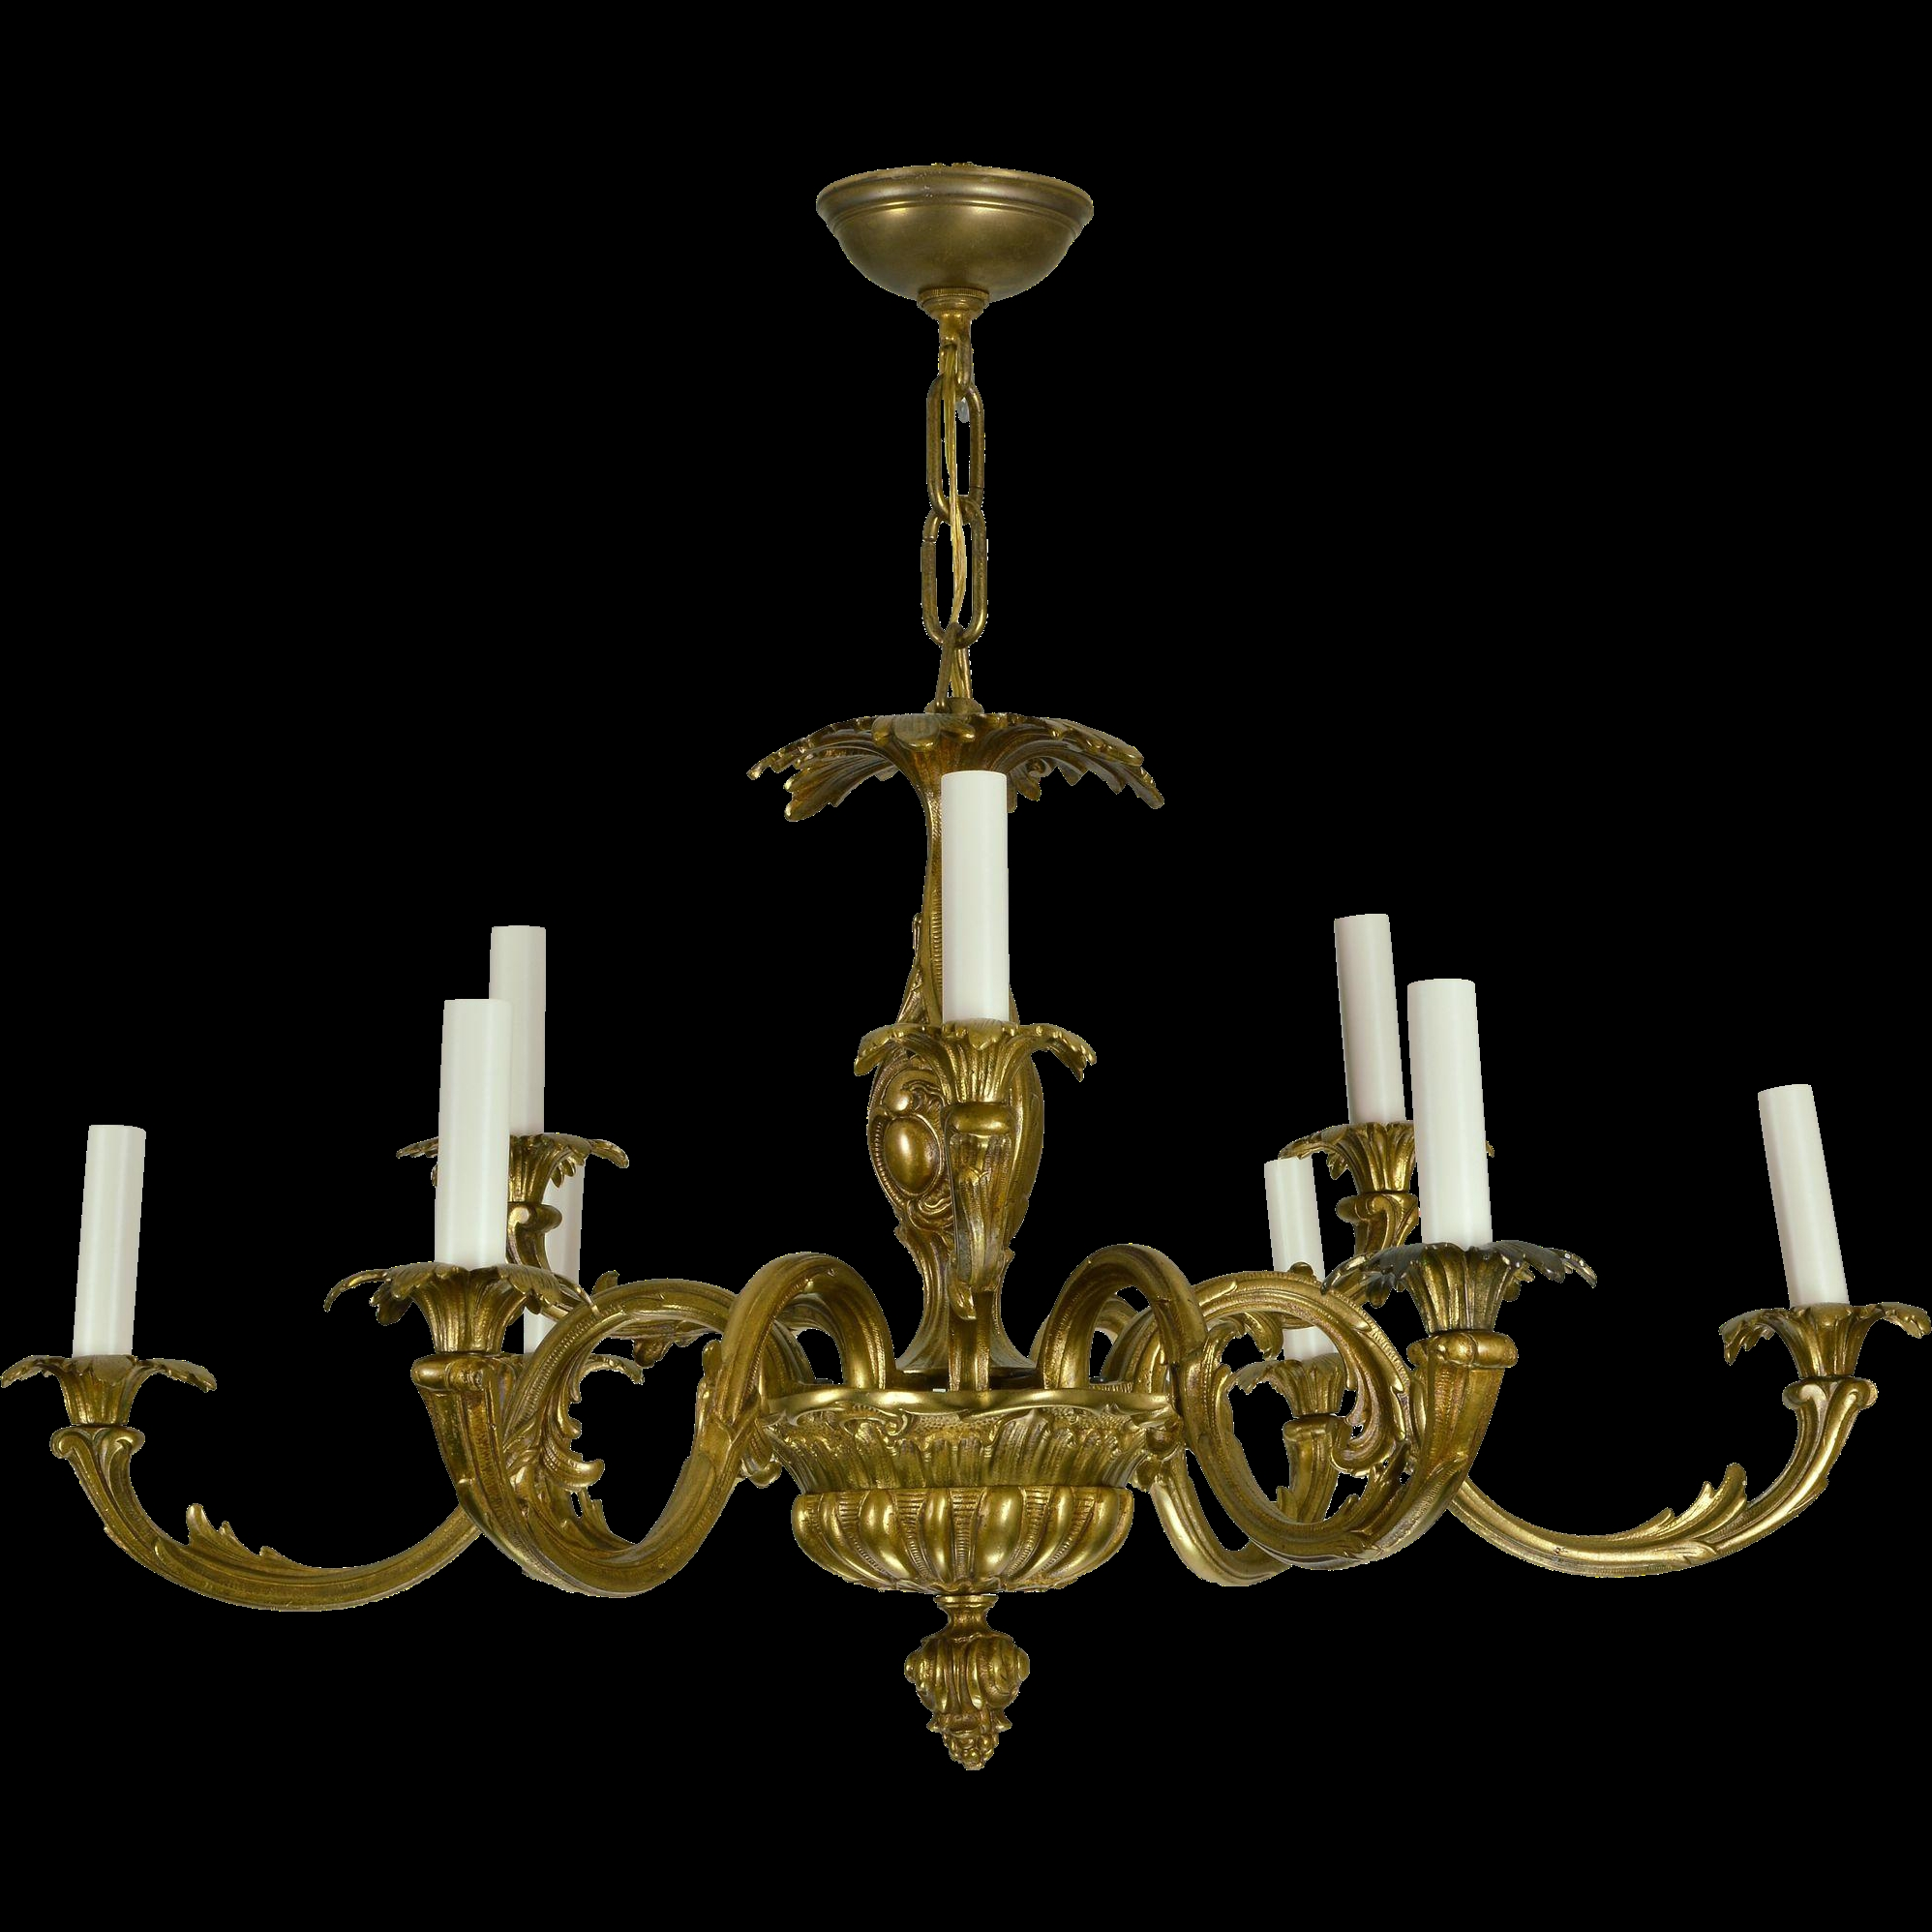 Vintage Brass French Baroque Chandelier From Tolw On Ru Lane Within Vintage Brass Chandeliers (Image 13 of 15)